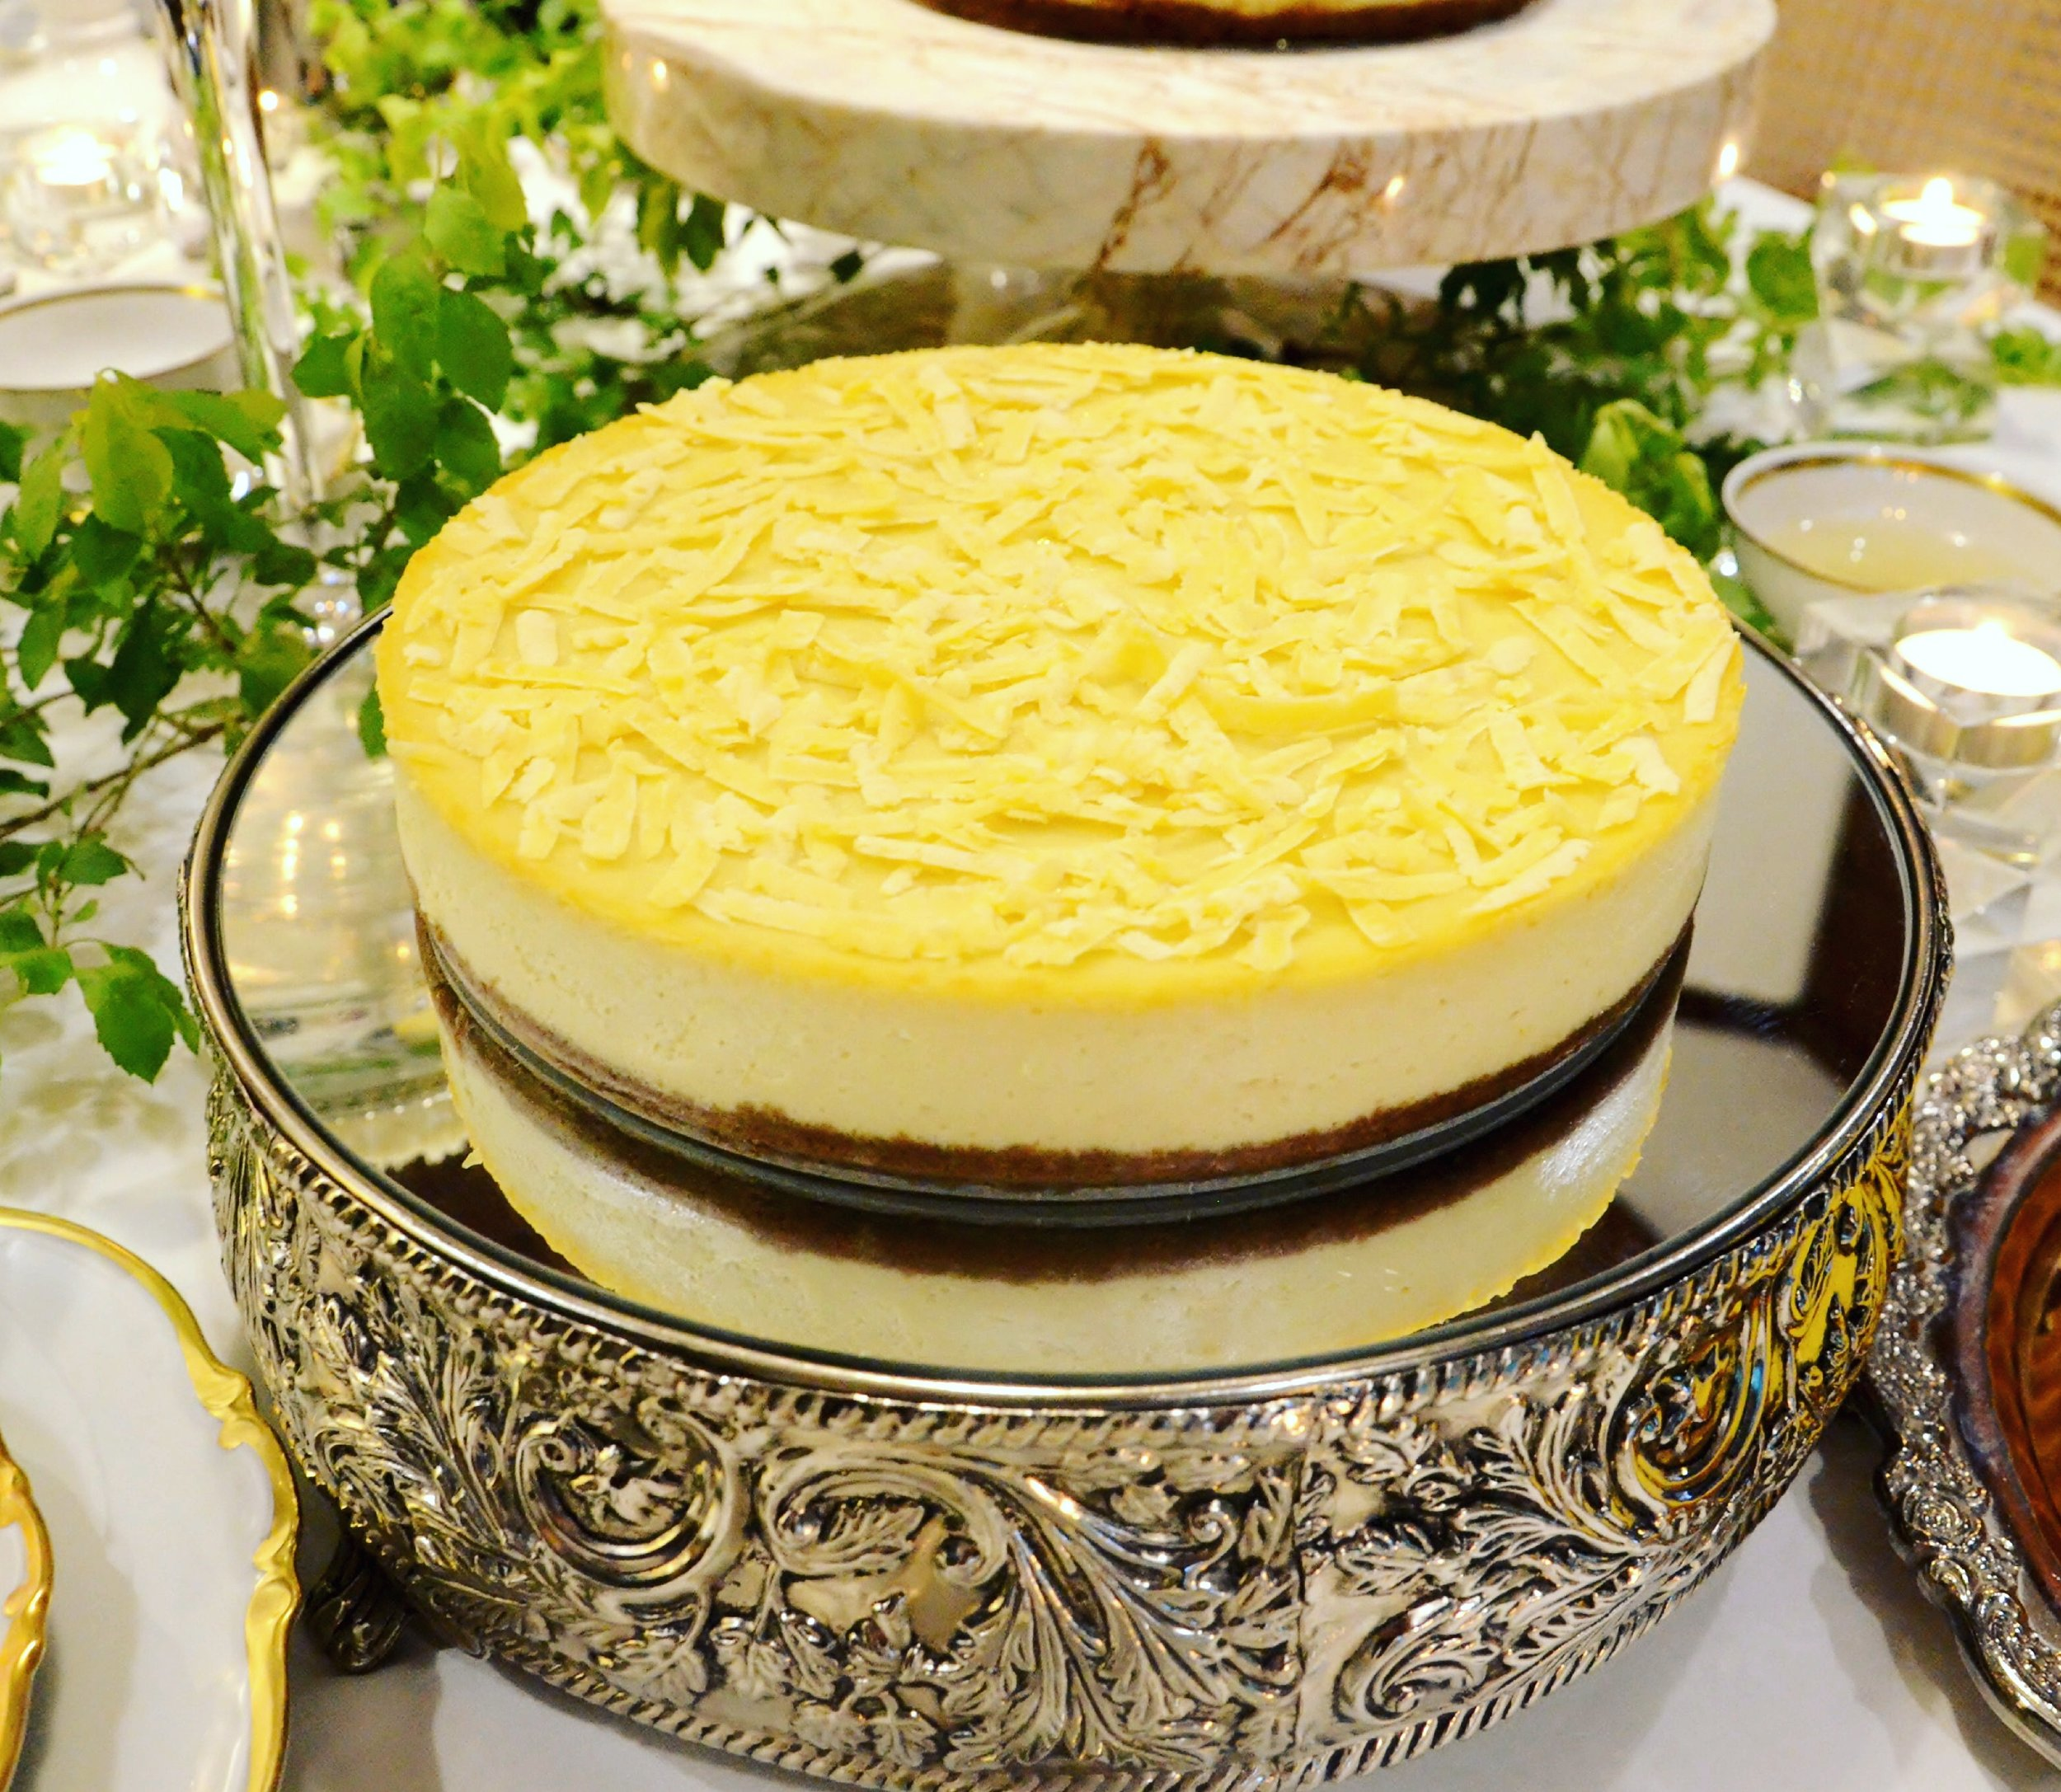 - QUEZO DE BOLA CHEESECAKEGenerous shavings of Quezo de Bola enveloped in a rich and velvety cheesecake.Available in Original and Sugar-free variant.9 inch (serves 10-12) Original P16006 inch (serves 6-8) Original P8009 inch Sugar-free P16006 inch Sugar-free P800Place an Order